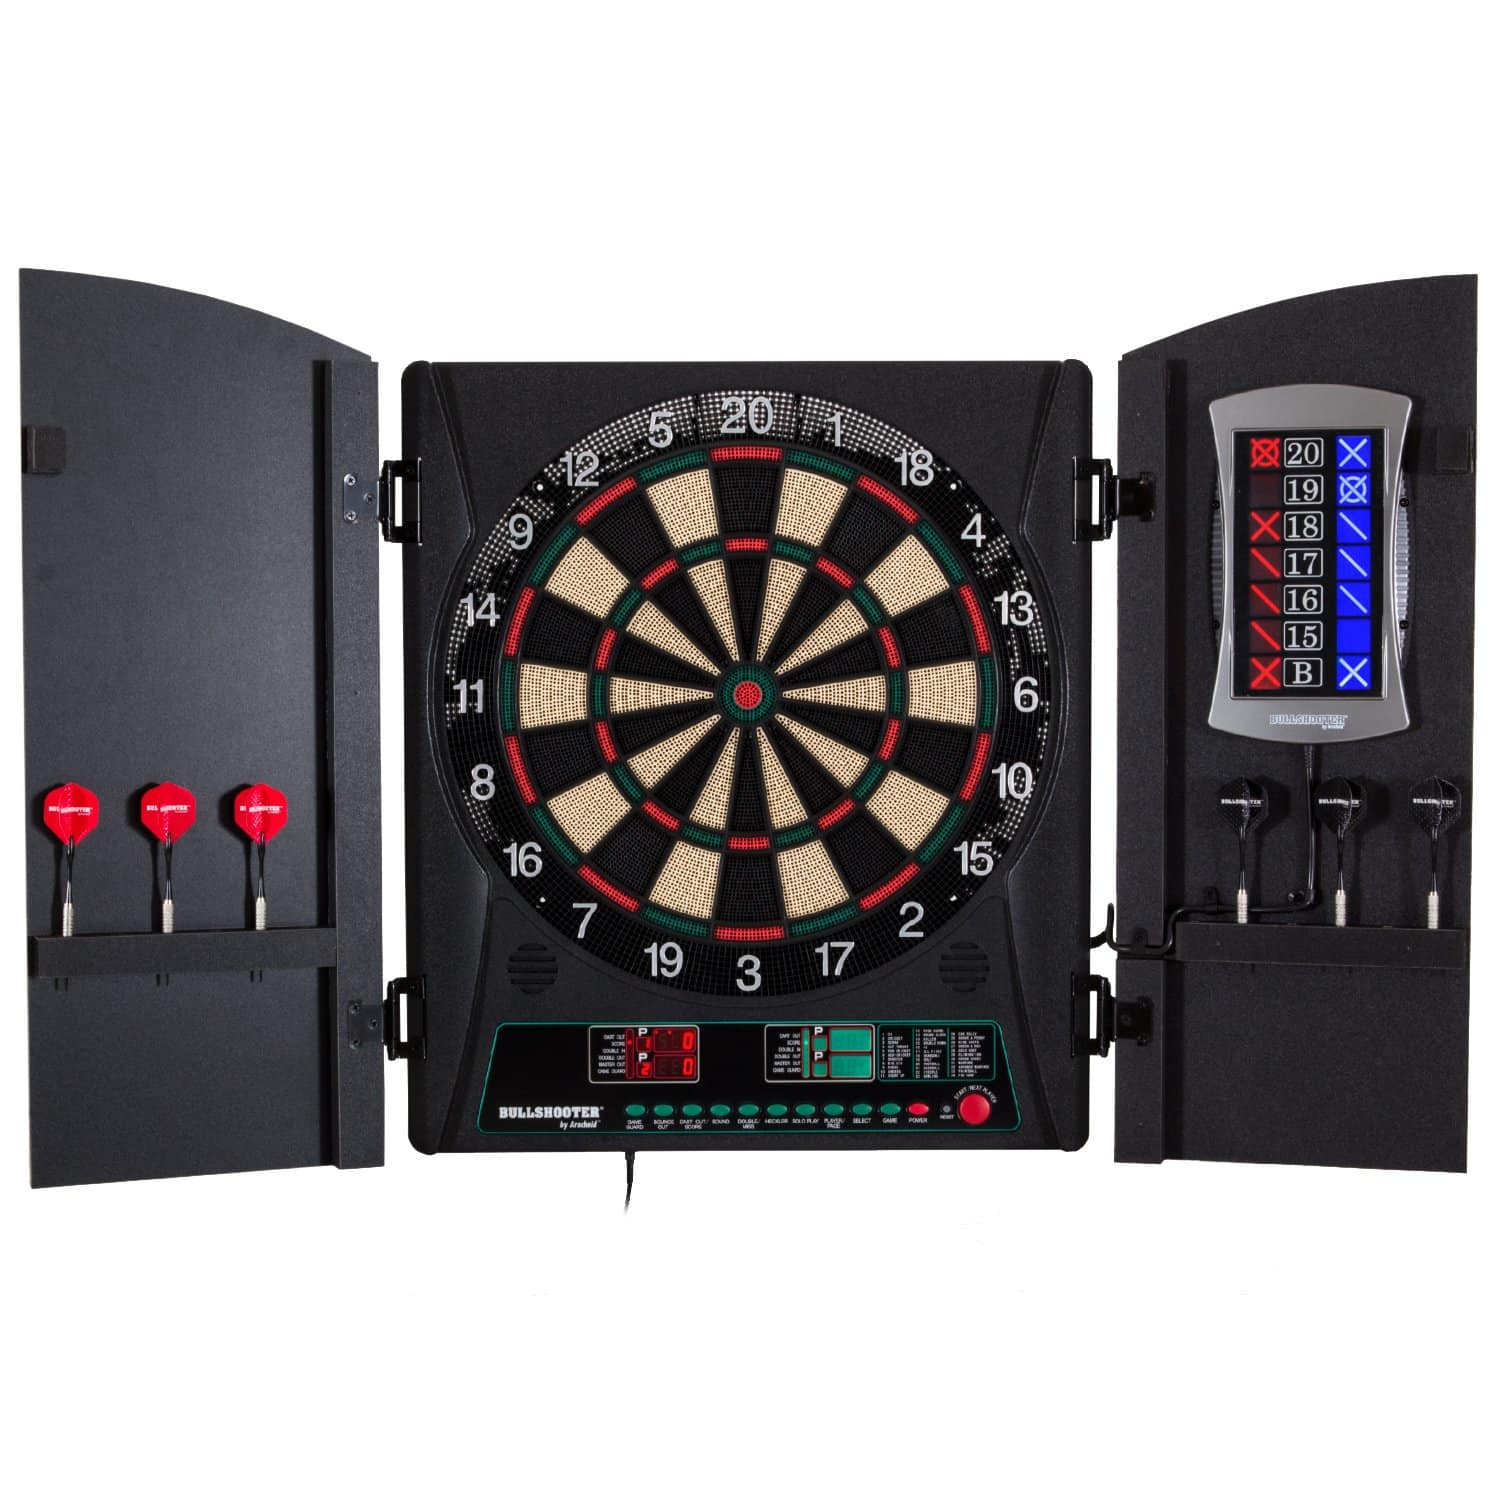 Bullshooter Cricket Maxx 1.0 Electronic Dartboard